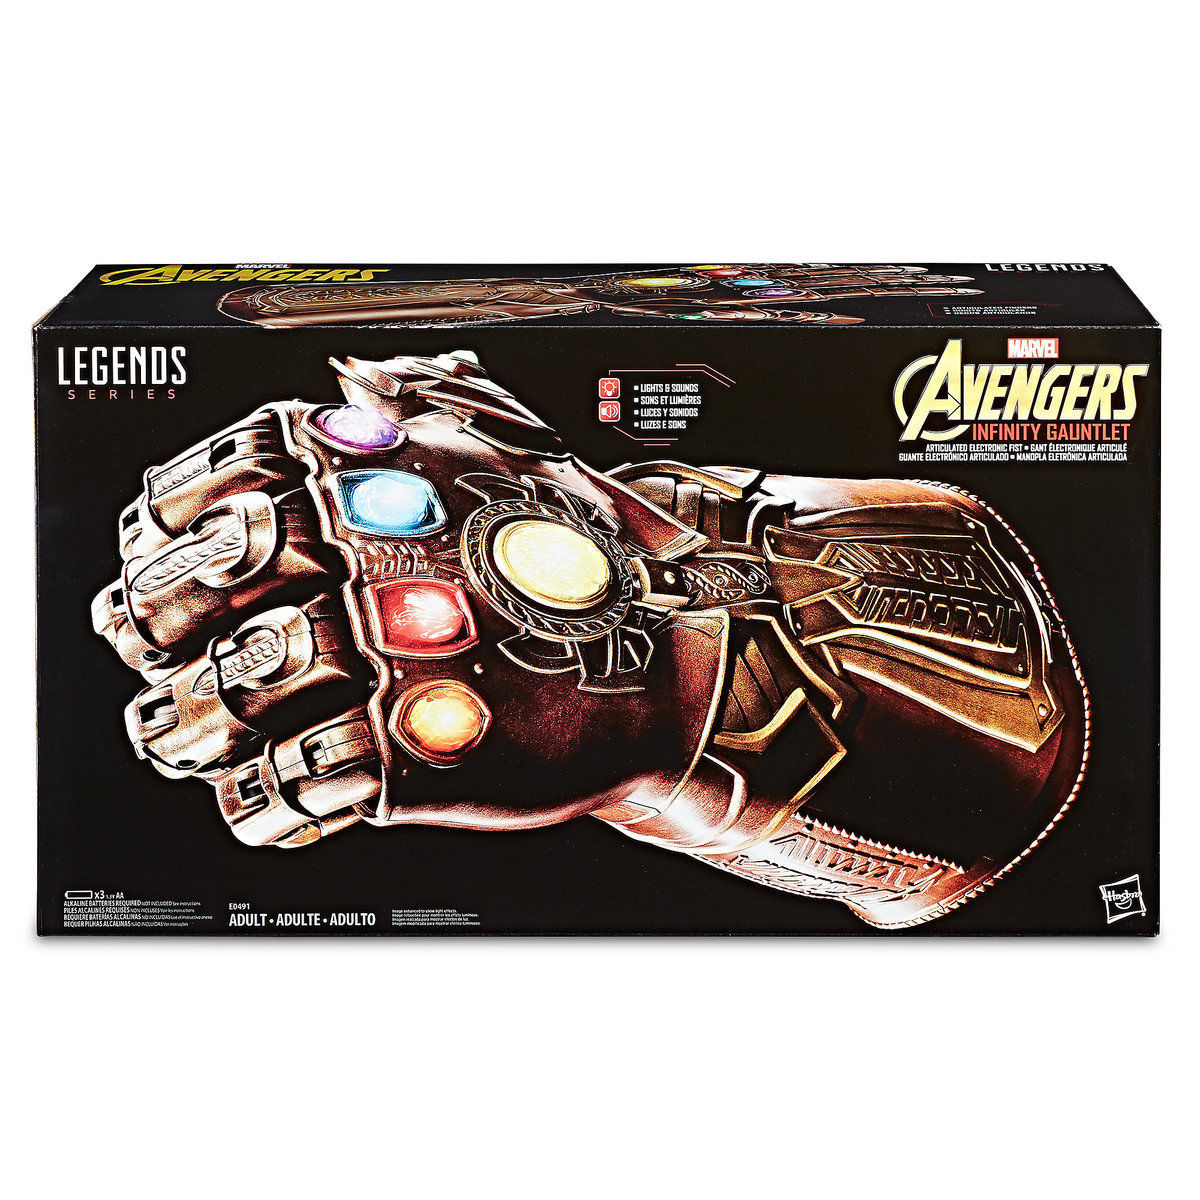 Disney Marvel's Avengers Infinity War Infinity Gauntlet Legends Limited New  Box